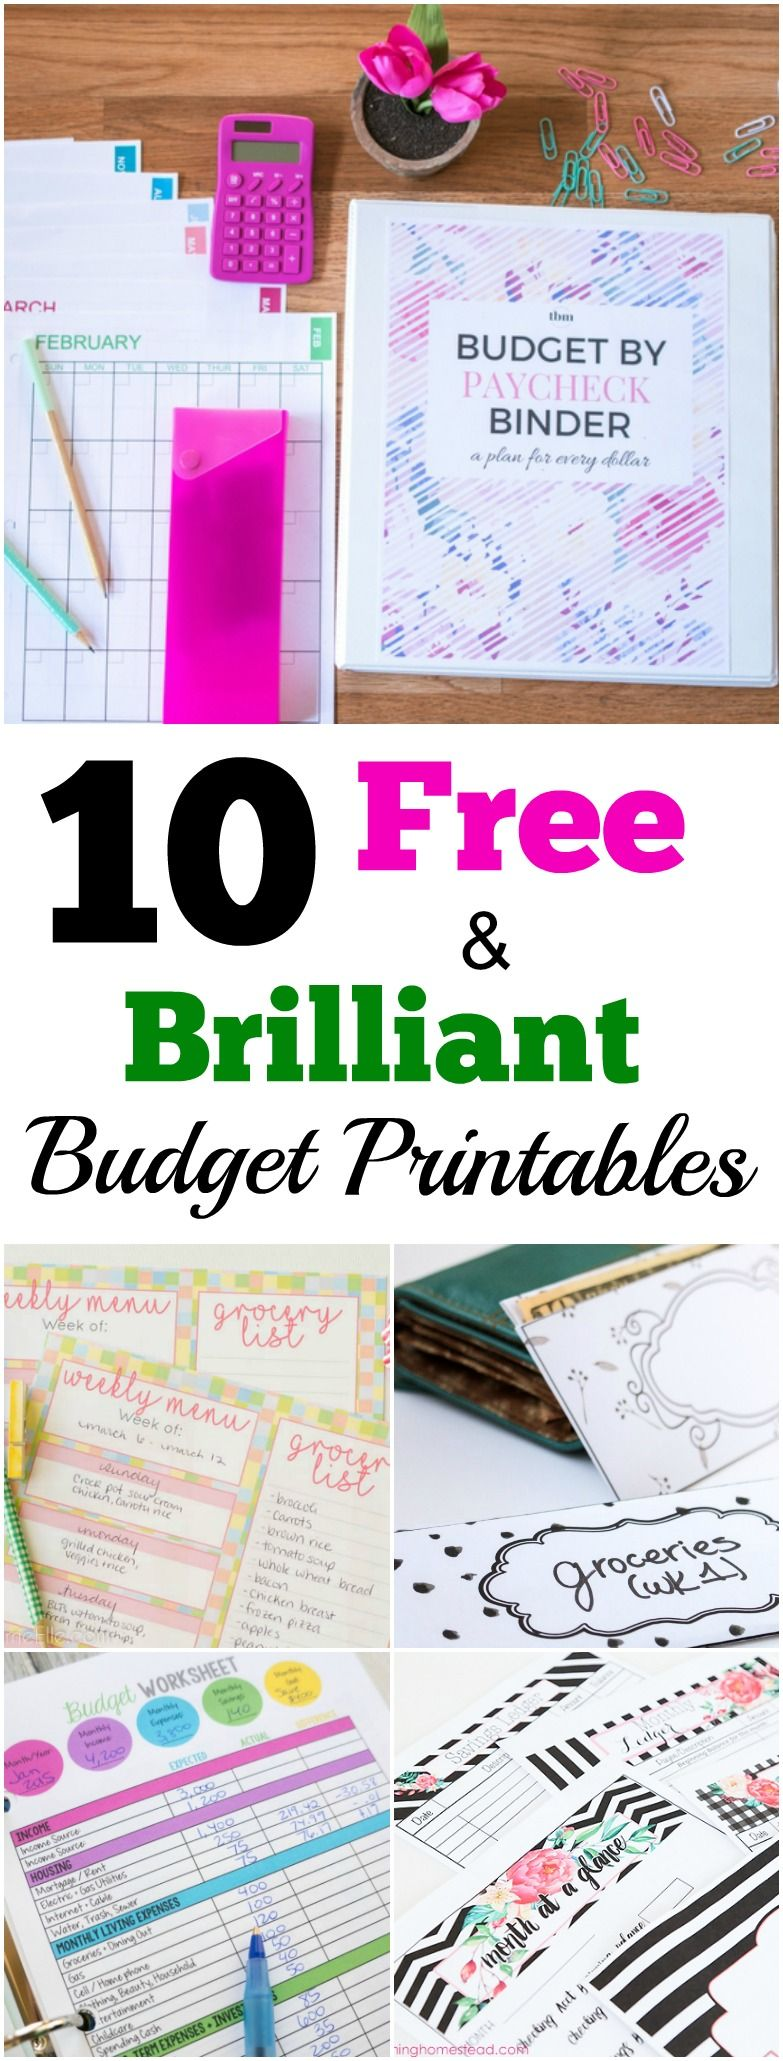 10 Free And Brilliant Budget Printables To Organize Your